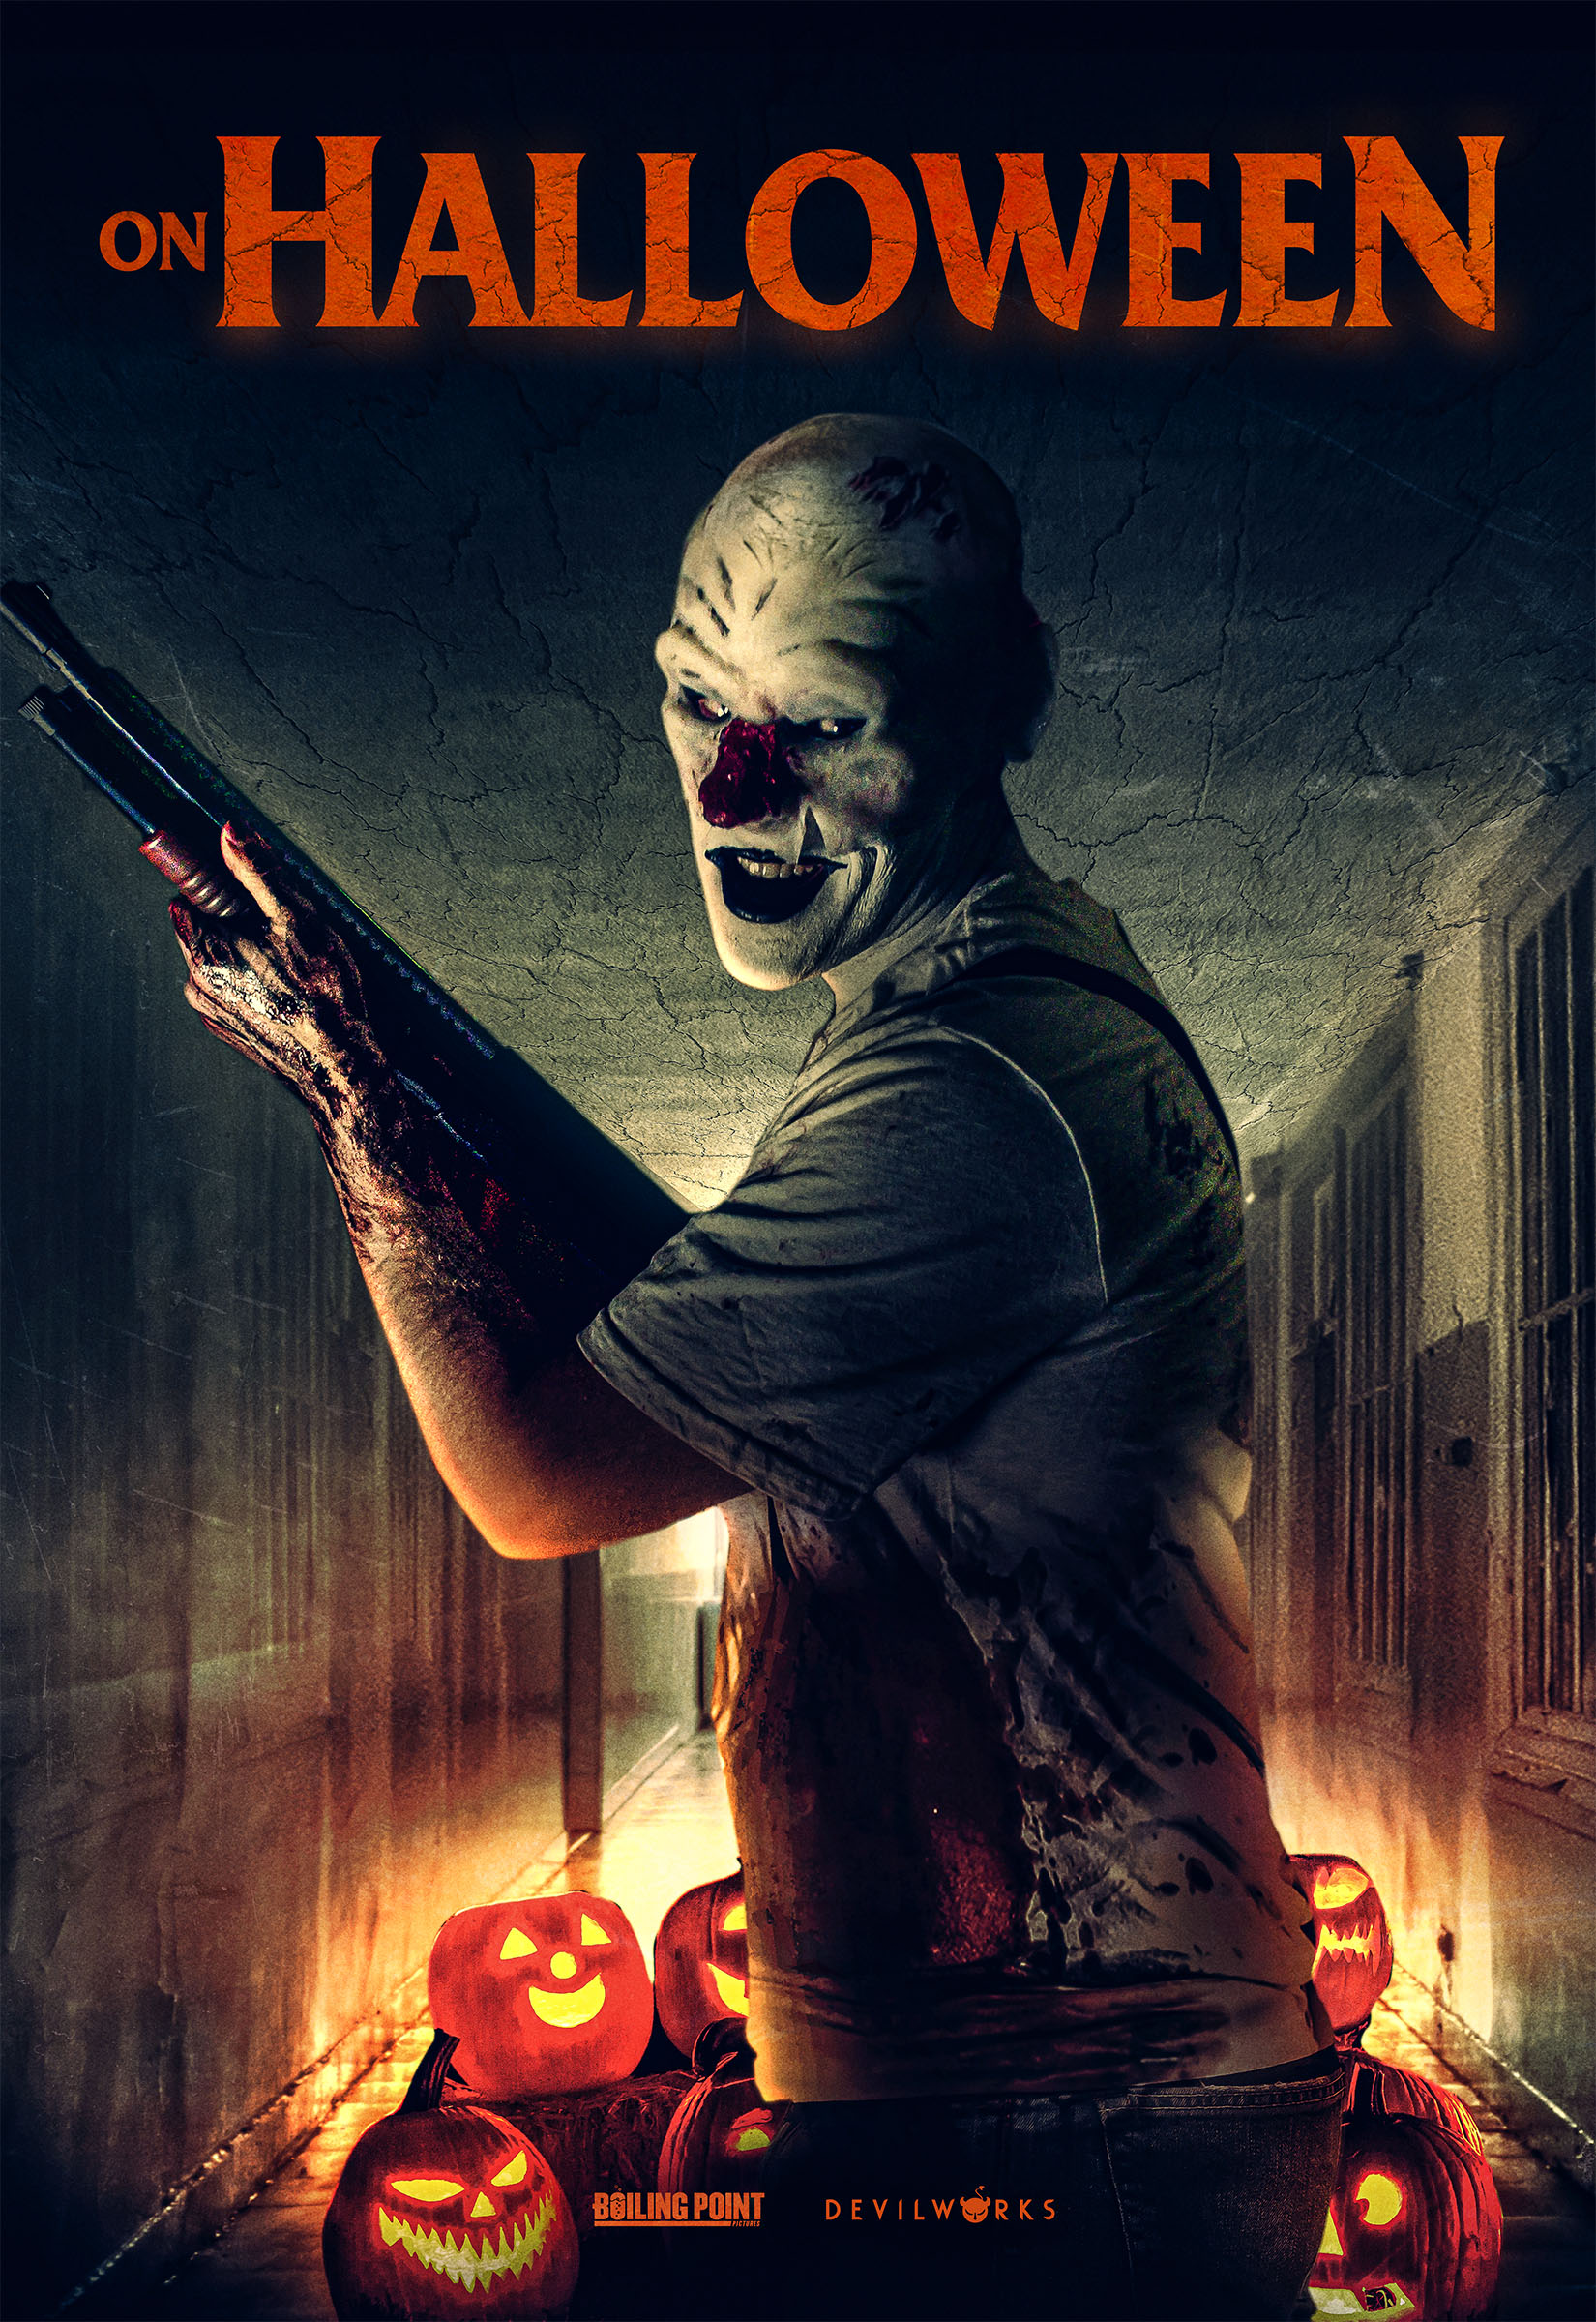 On Halloween (2020) Bengali Dubbed (Voice Over) WEBRip 720p [Full Movie] 1XBET